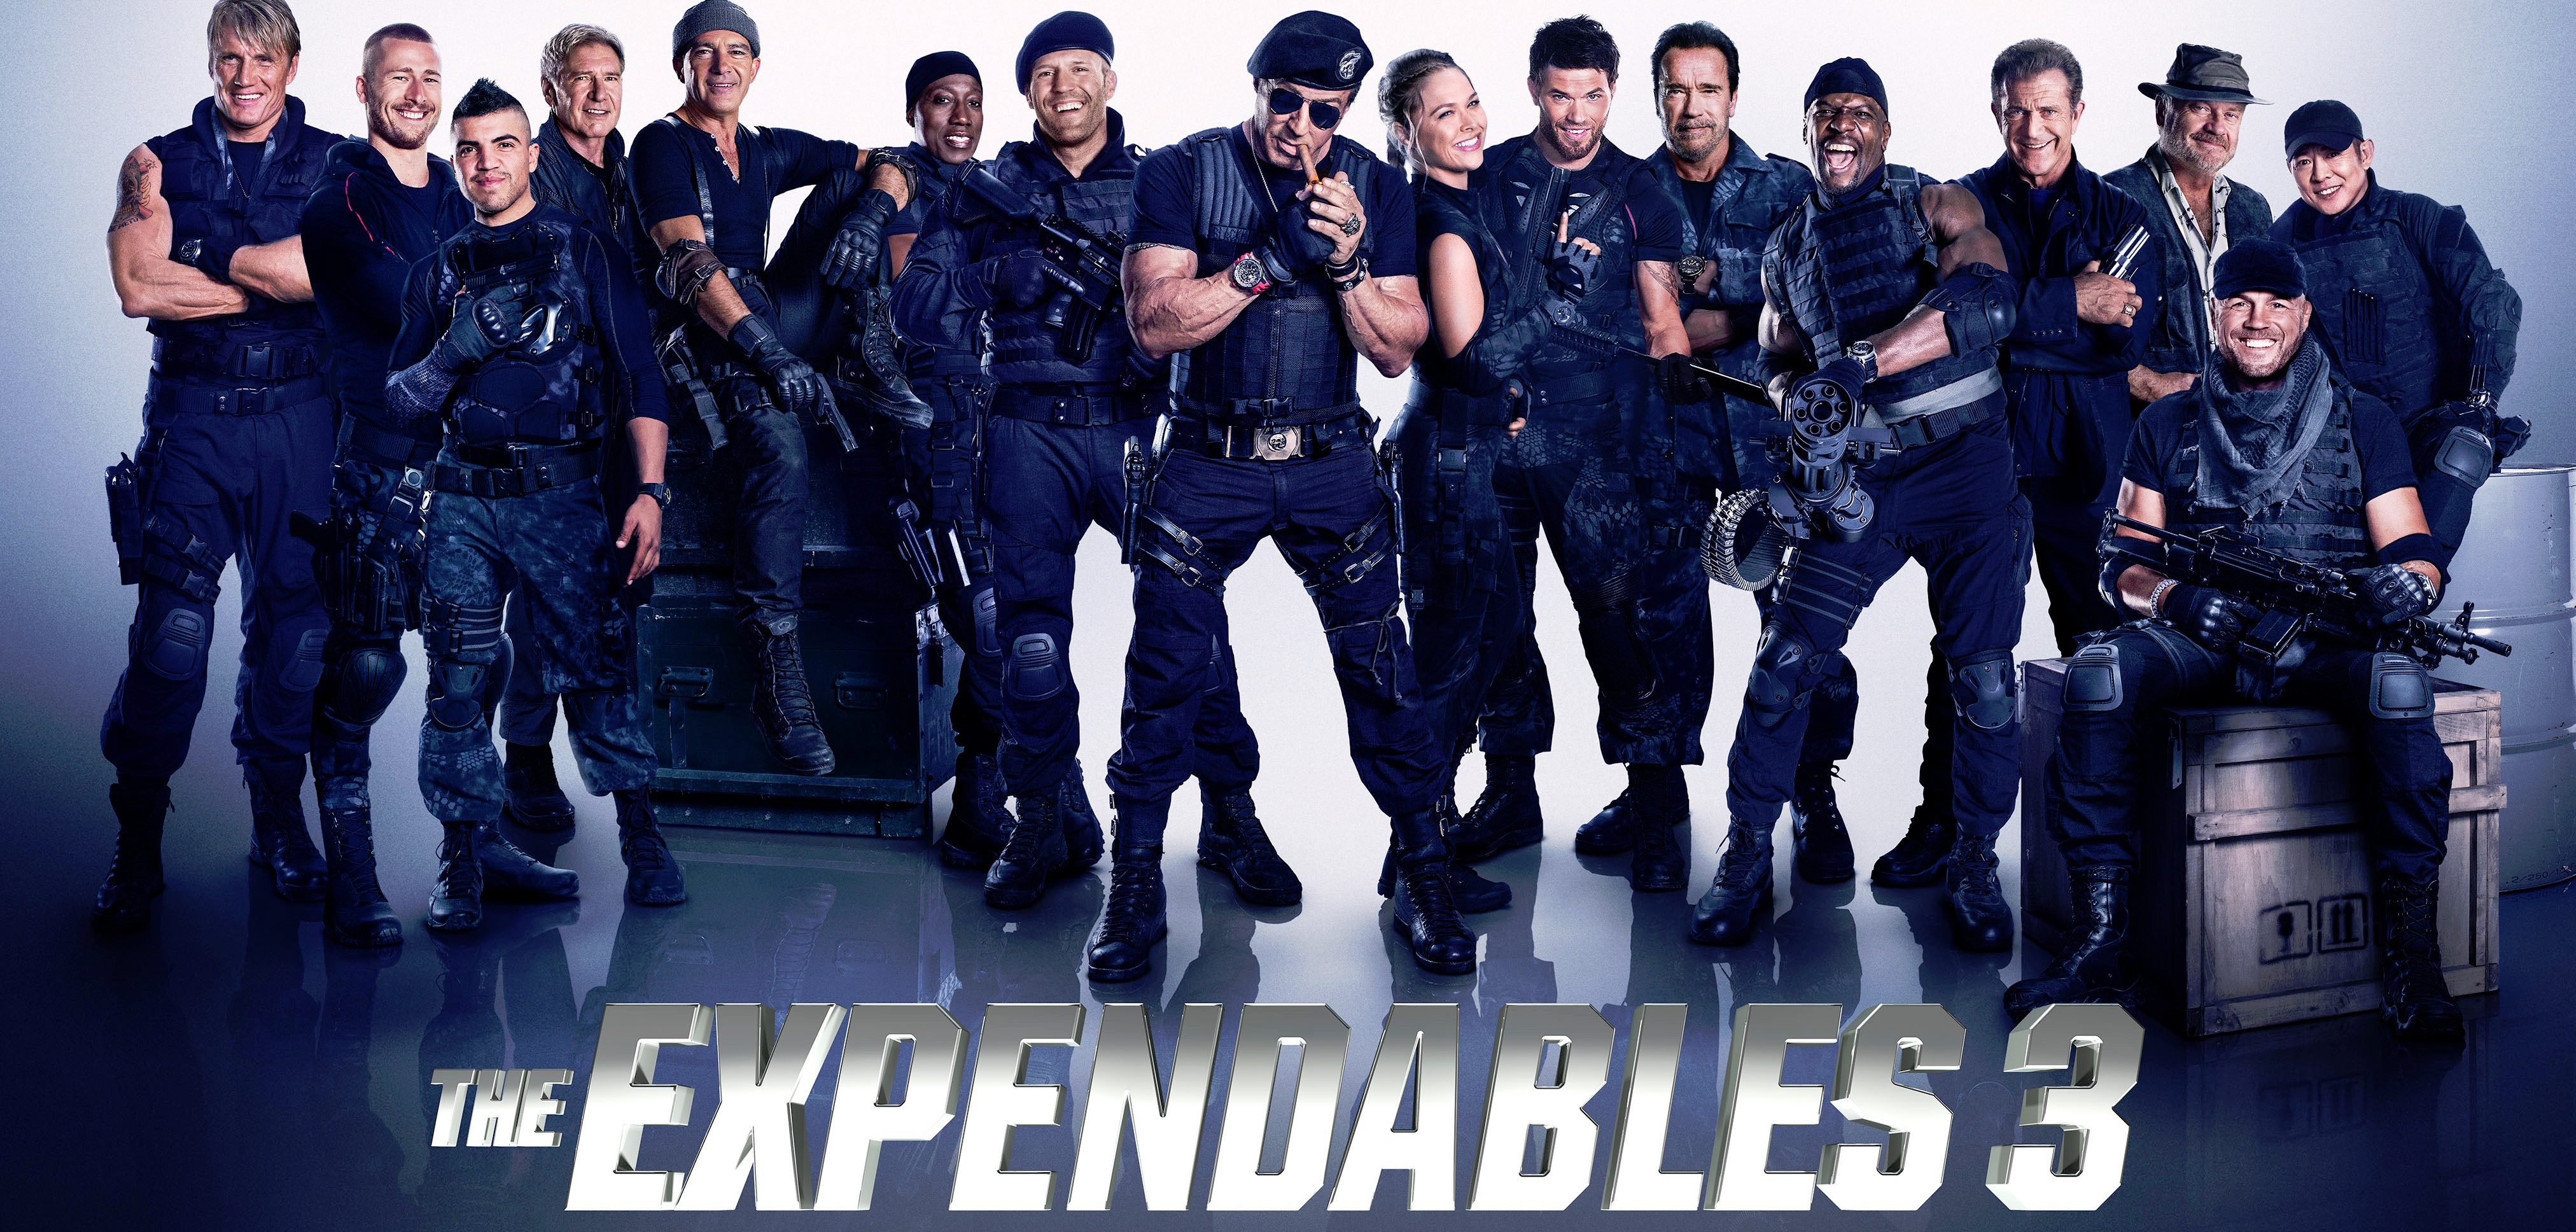 The Expendables Ganzer Film Deutsch